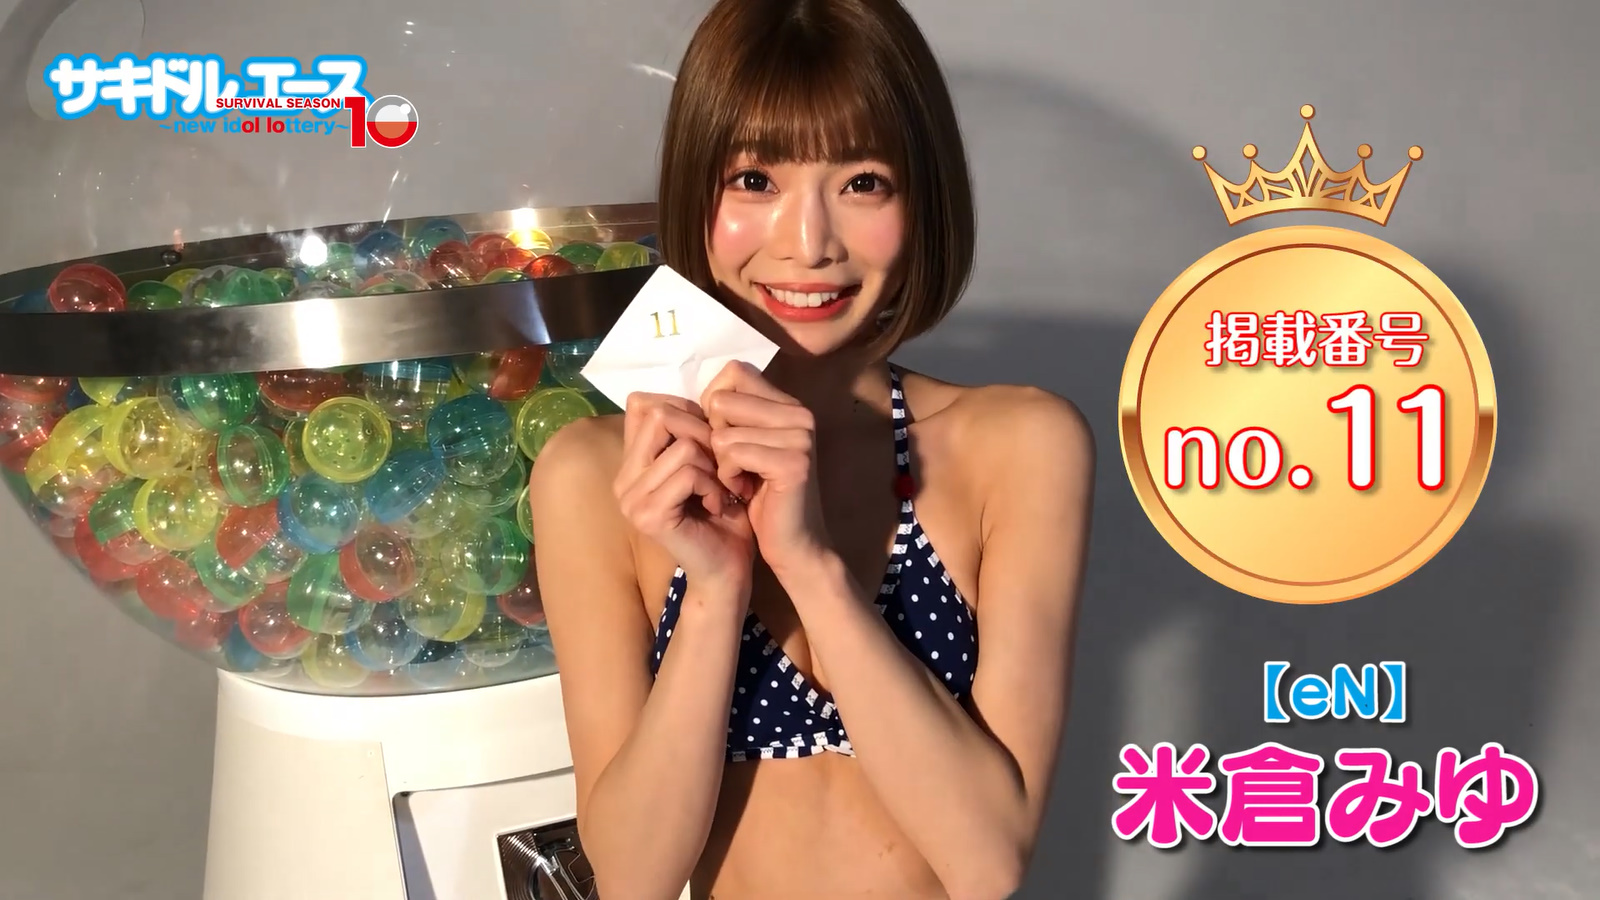 Sakidol Ace 10 Introduction Movie Capture of Swimsuit211